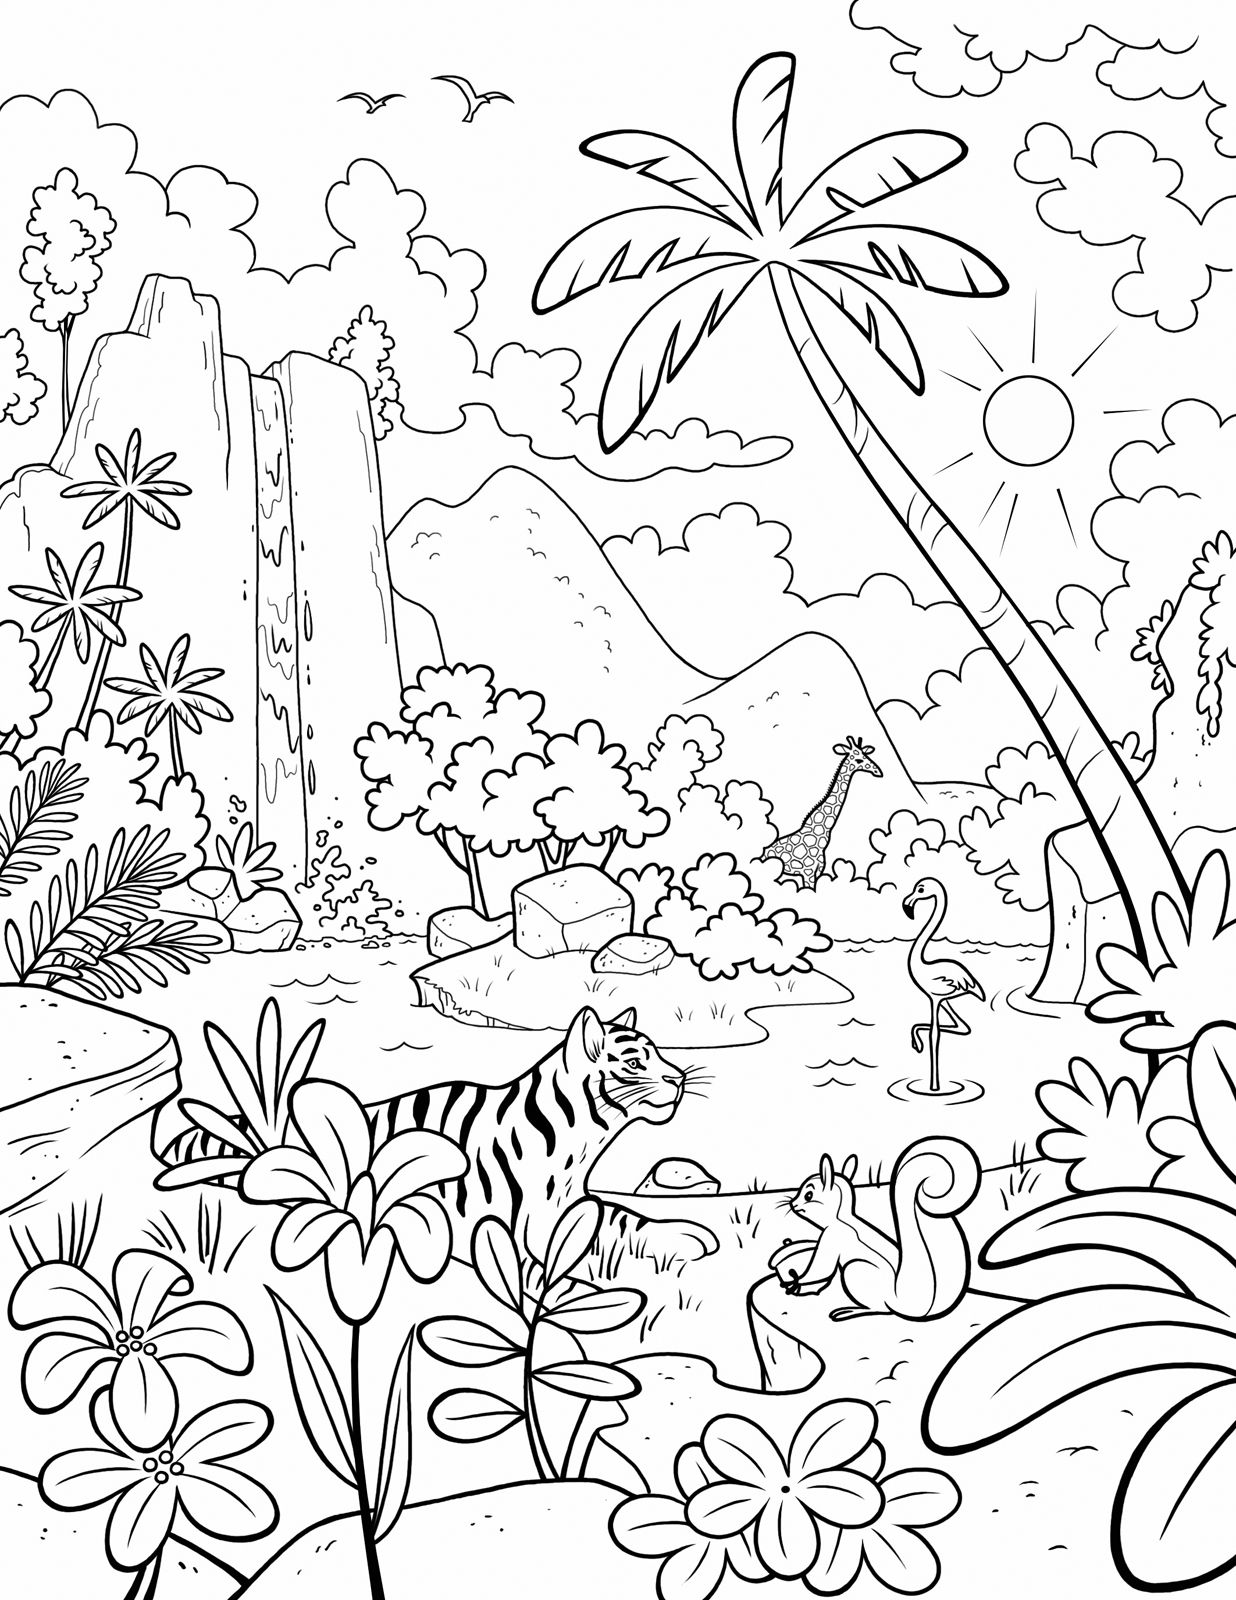 primary coloring pages # 1